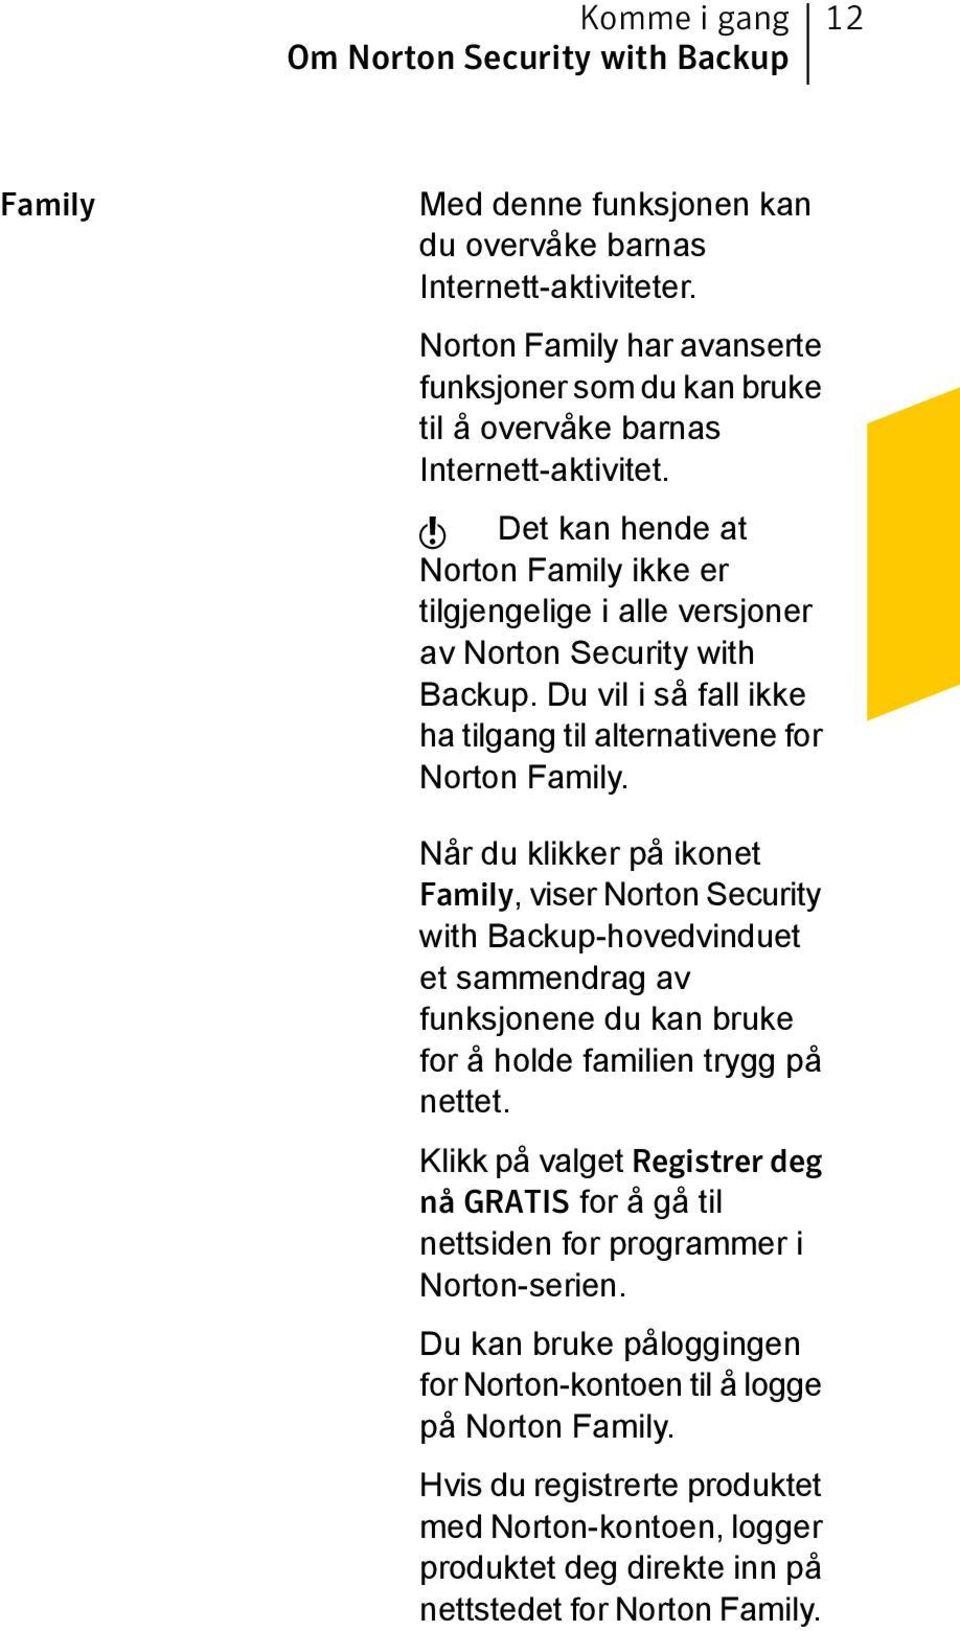 w Det kan hende at Norton Family ikke er tilgjengelige i alle versjoner av Norton Security with Backup. Du vil i så fall ikke ha tilgang til alternativene for Norton Family.